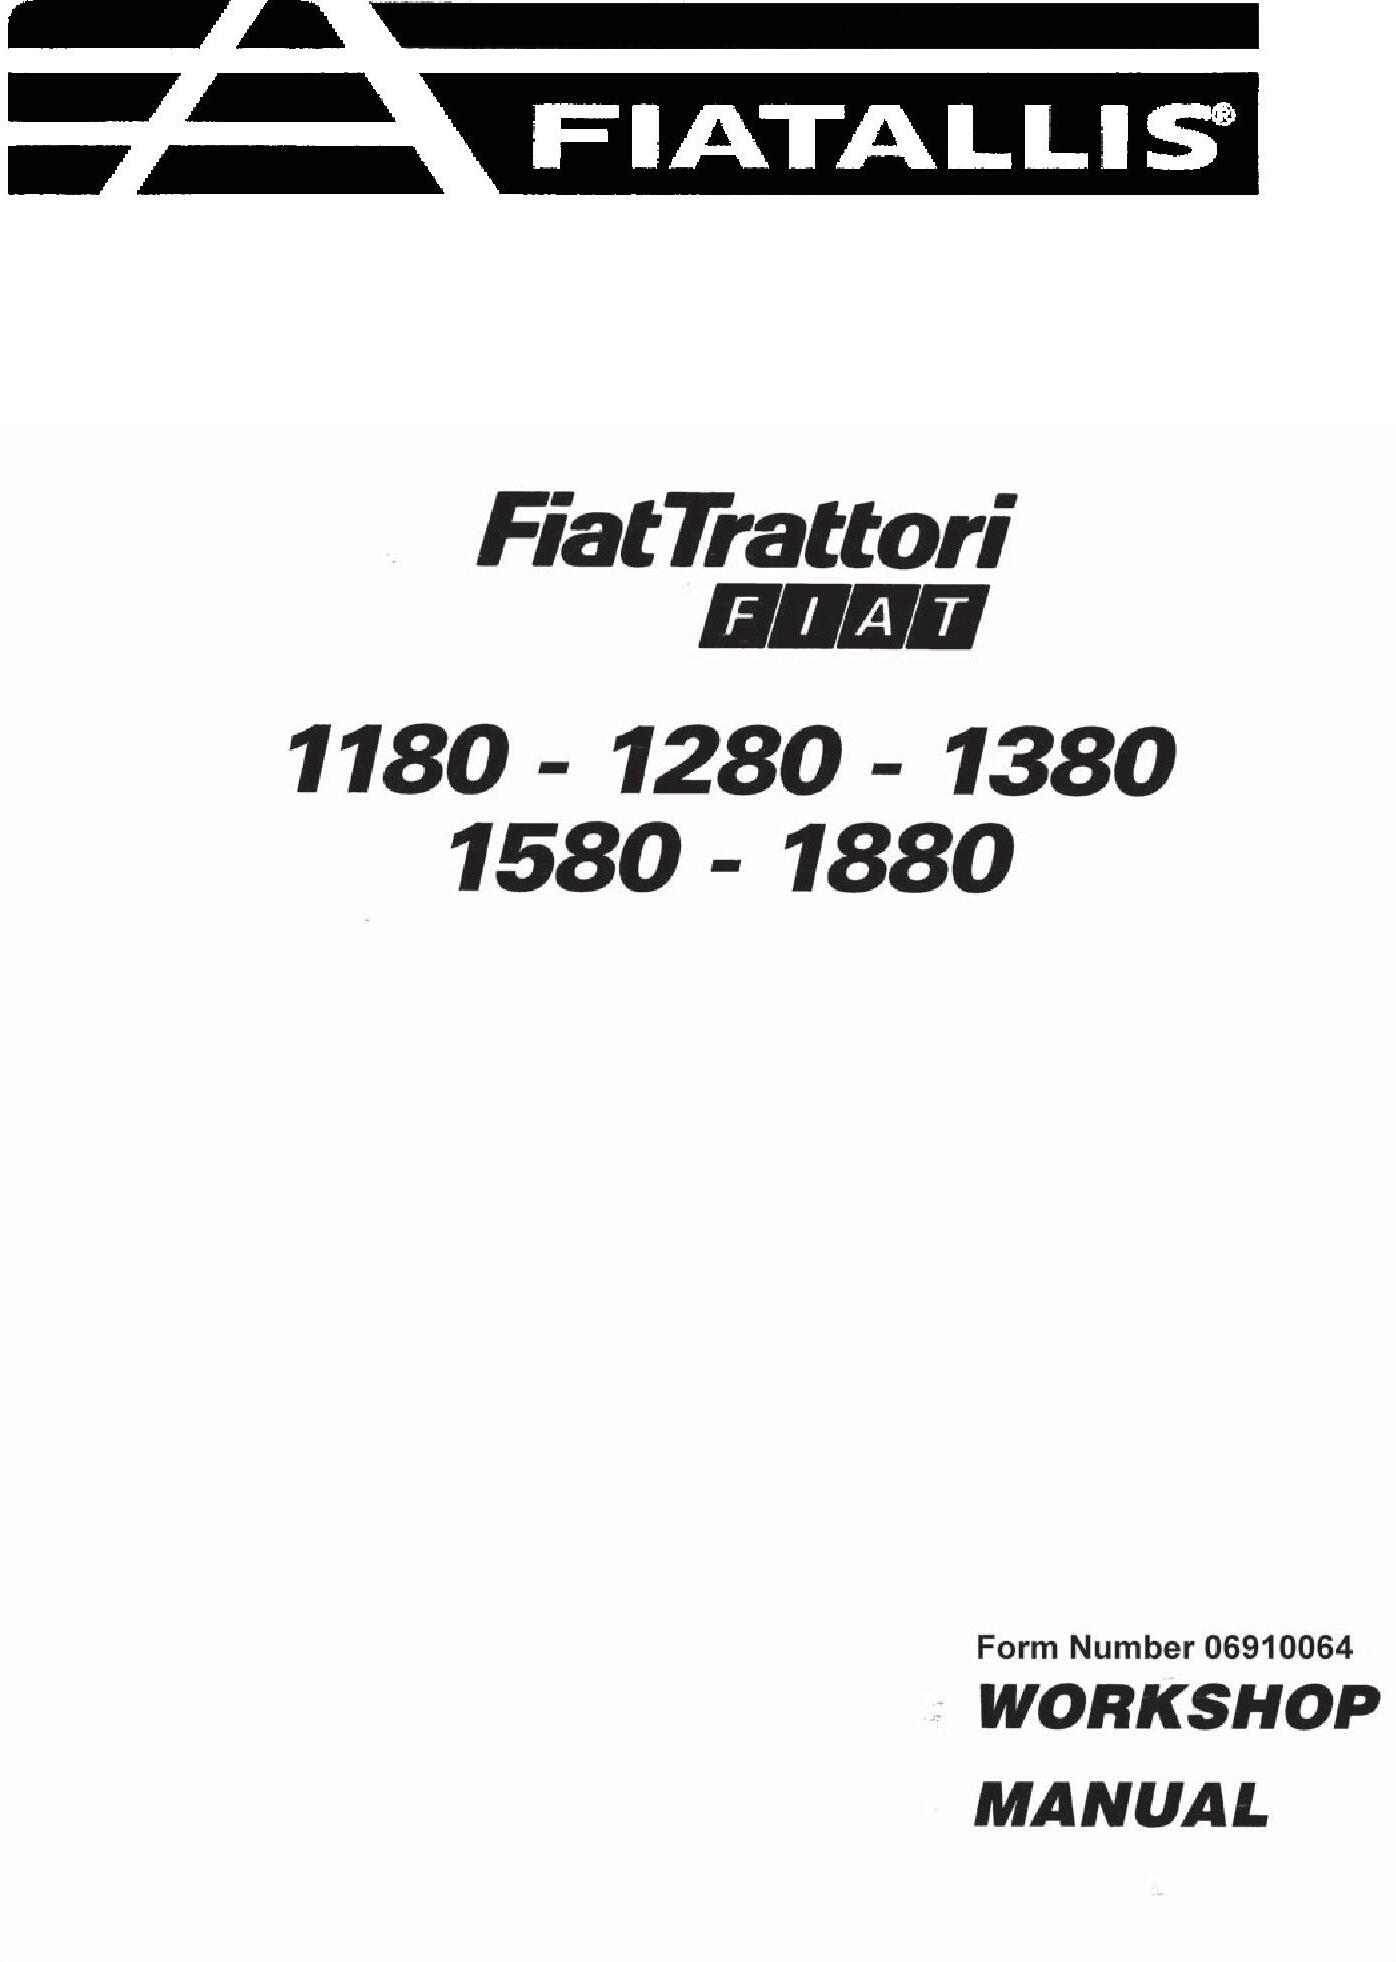 Fiat 1180, 1280, 1380, 1580, 1880 (DT) Tractor Service